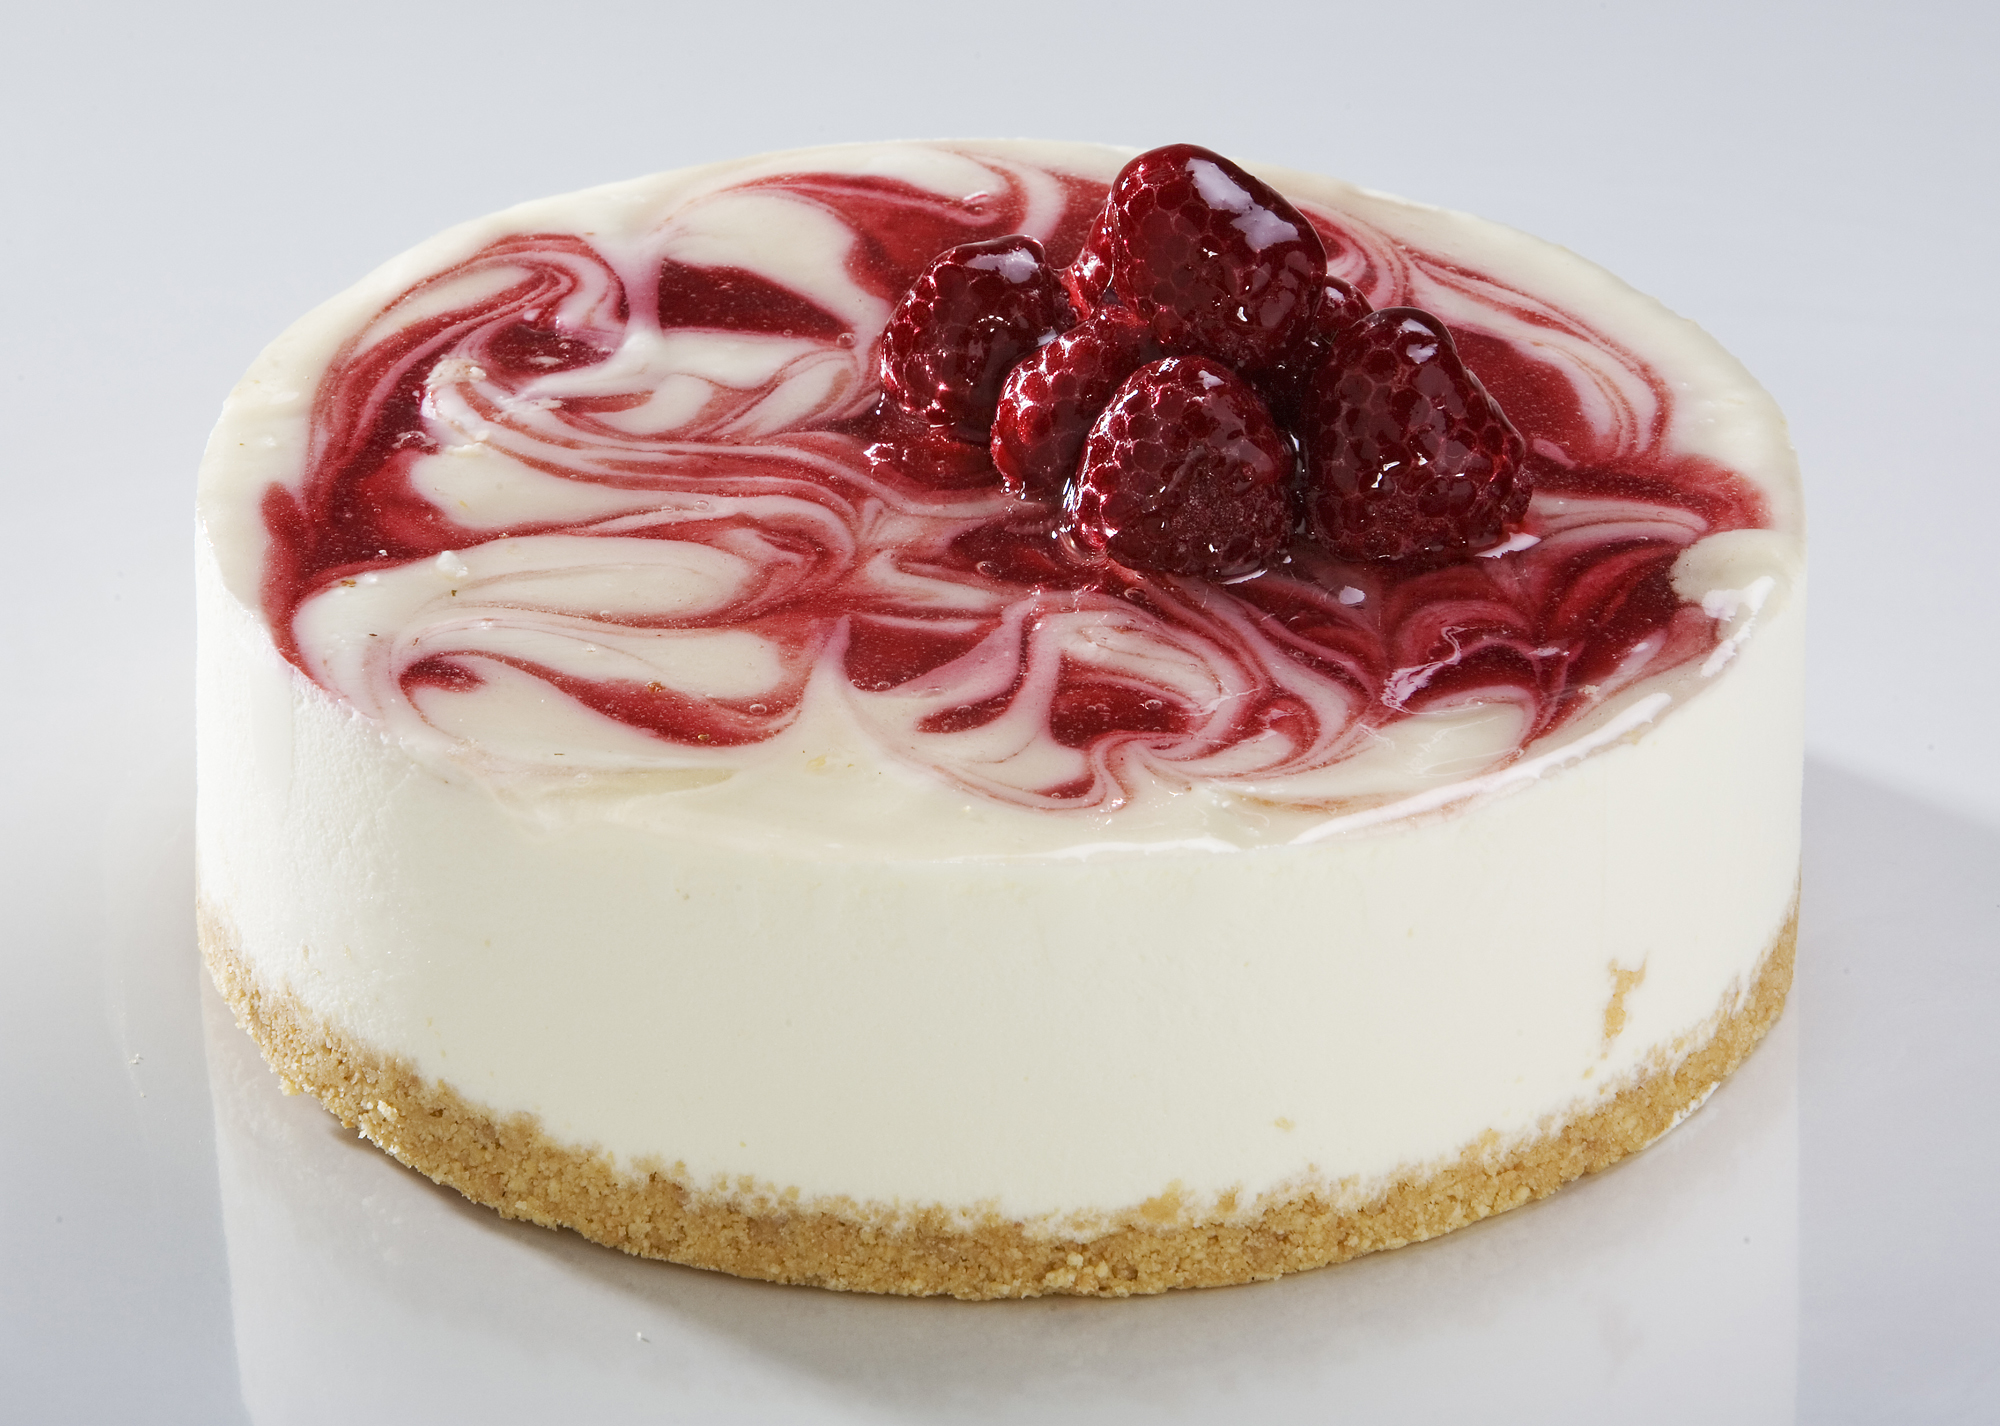 cheesecake-a-symbol-of-single-life.jpg